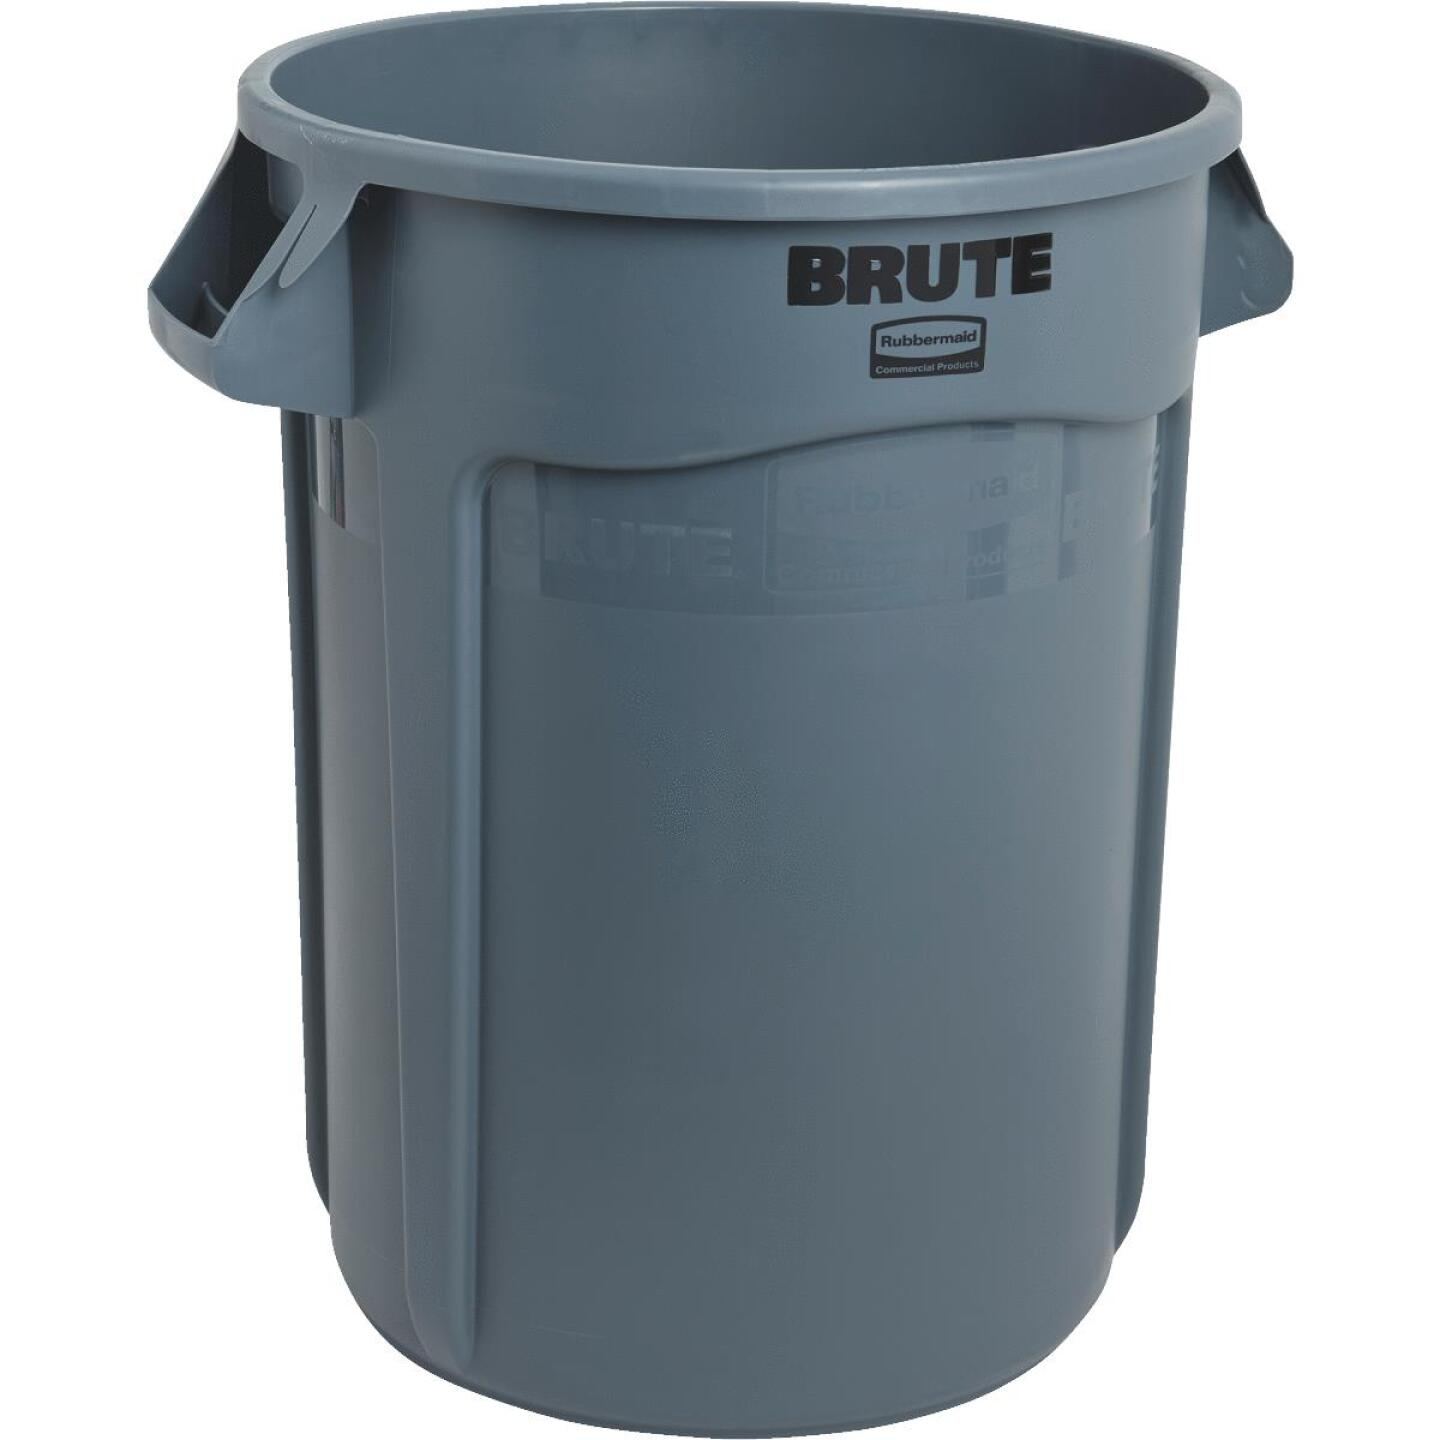 Rubbermaid Commercial Brute 32 Gal. Plastic Commercial Trash Can Image 1